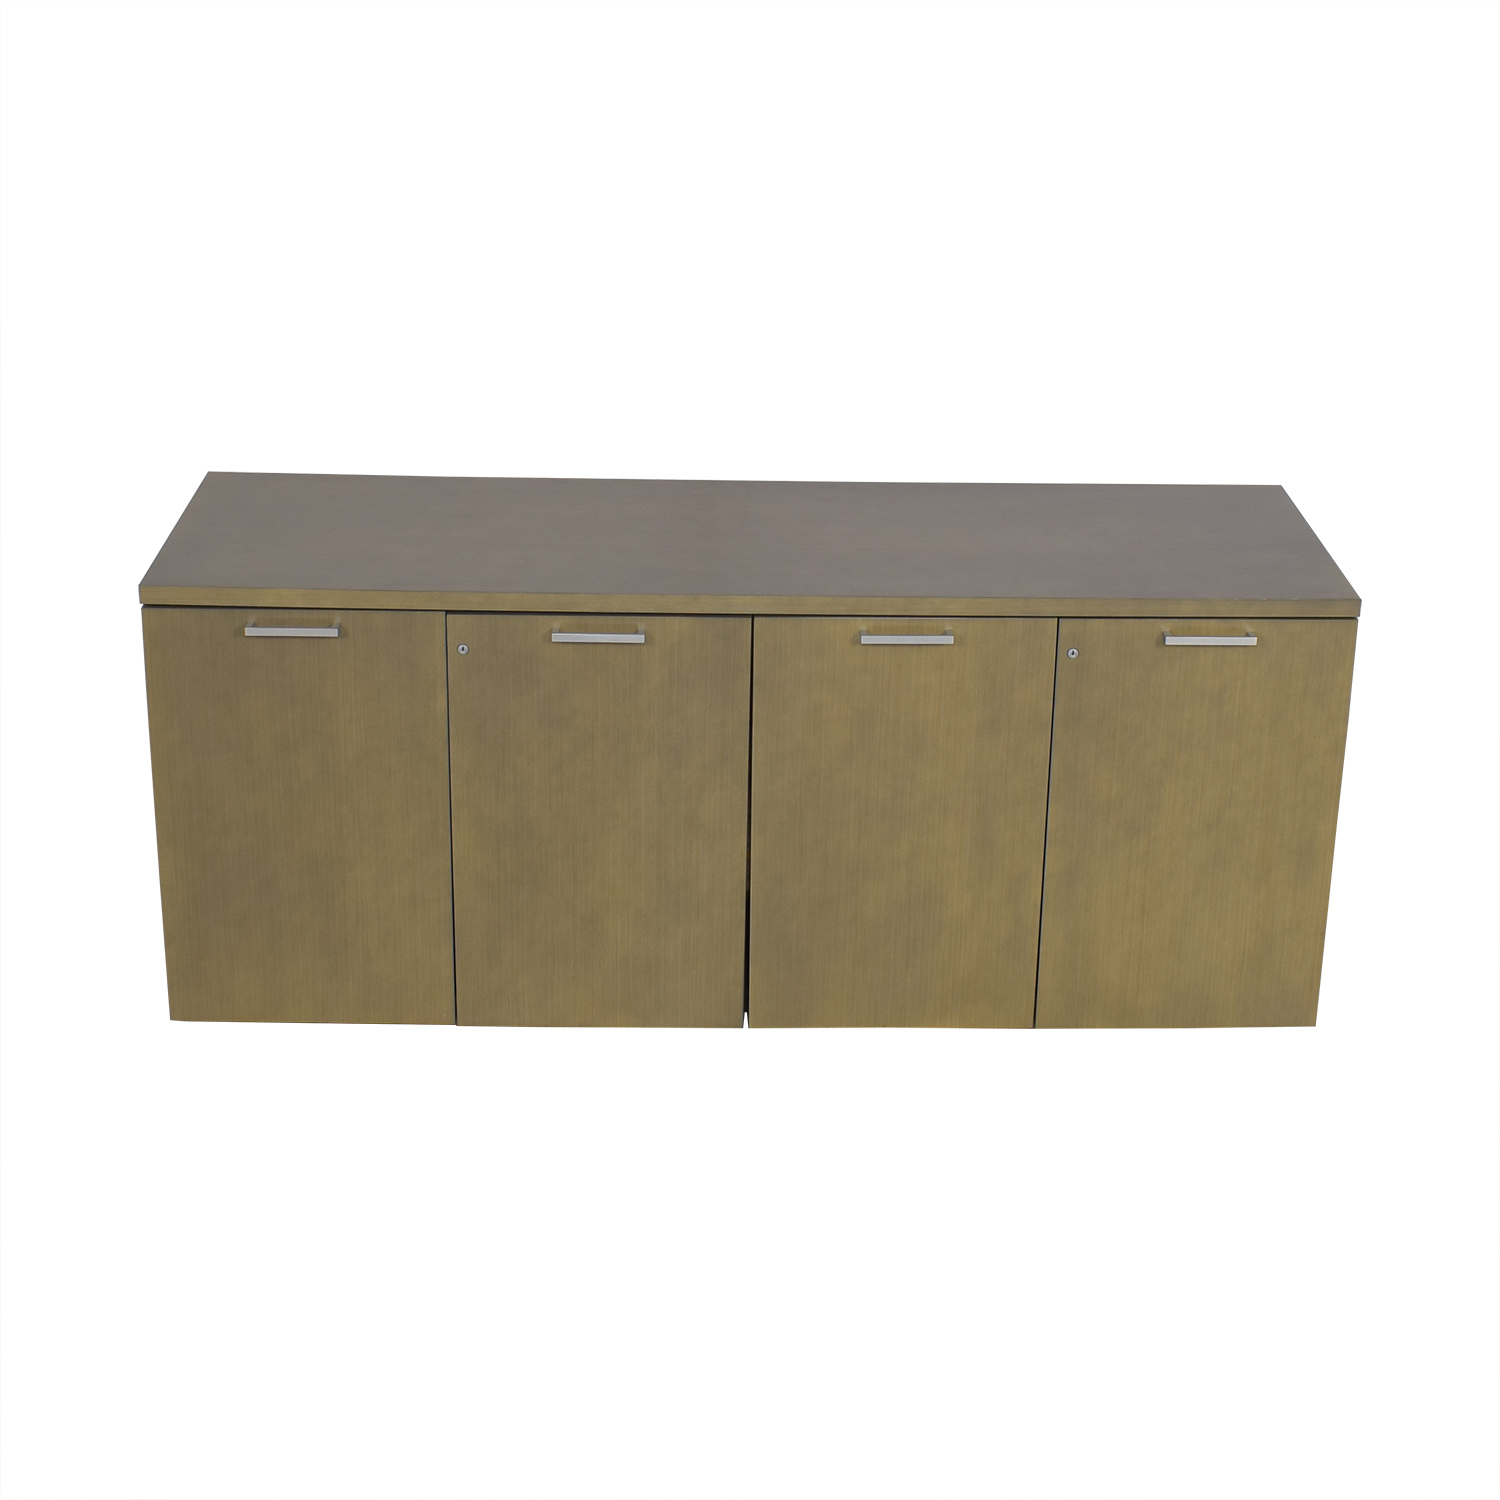 Modern Credenza with Cabinets dimensions